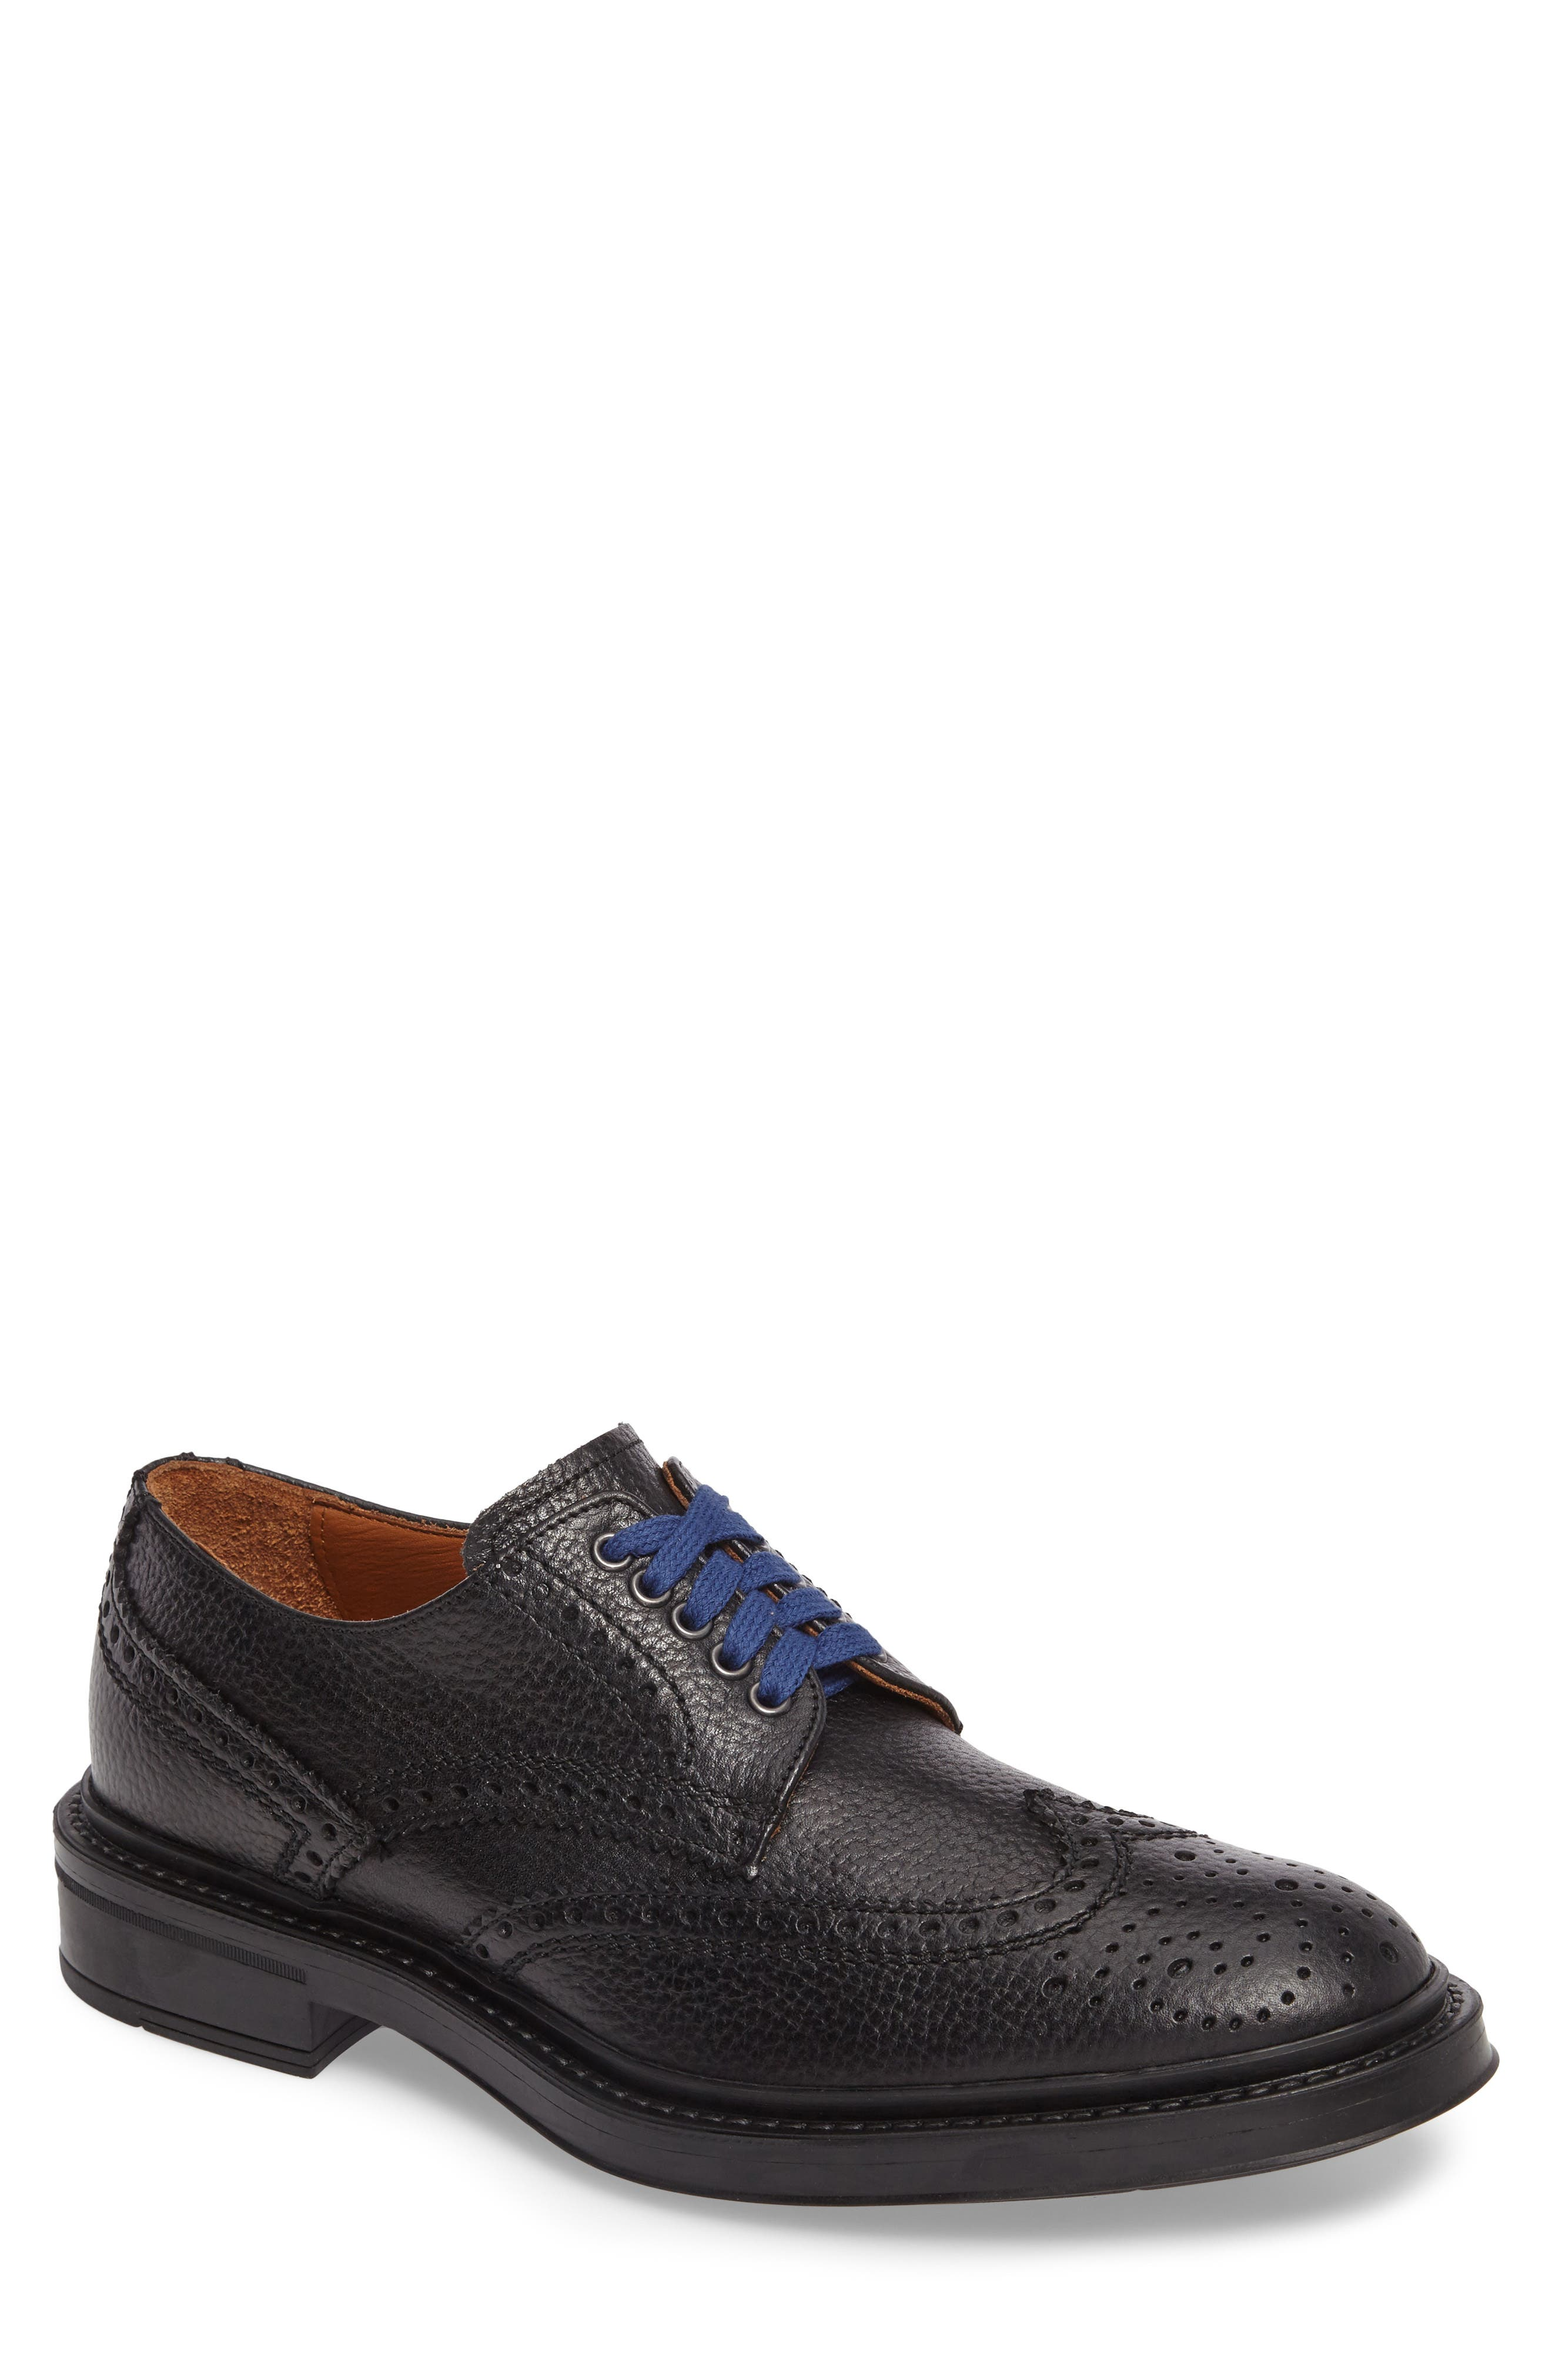 Landon Weatherproof Wingtip,                         Main,                         color, Black